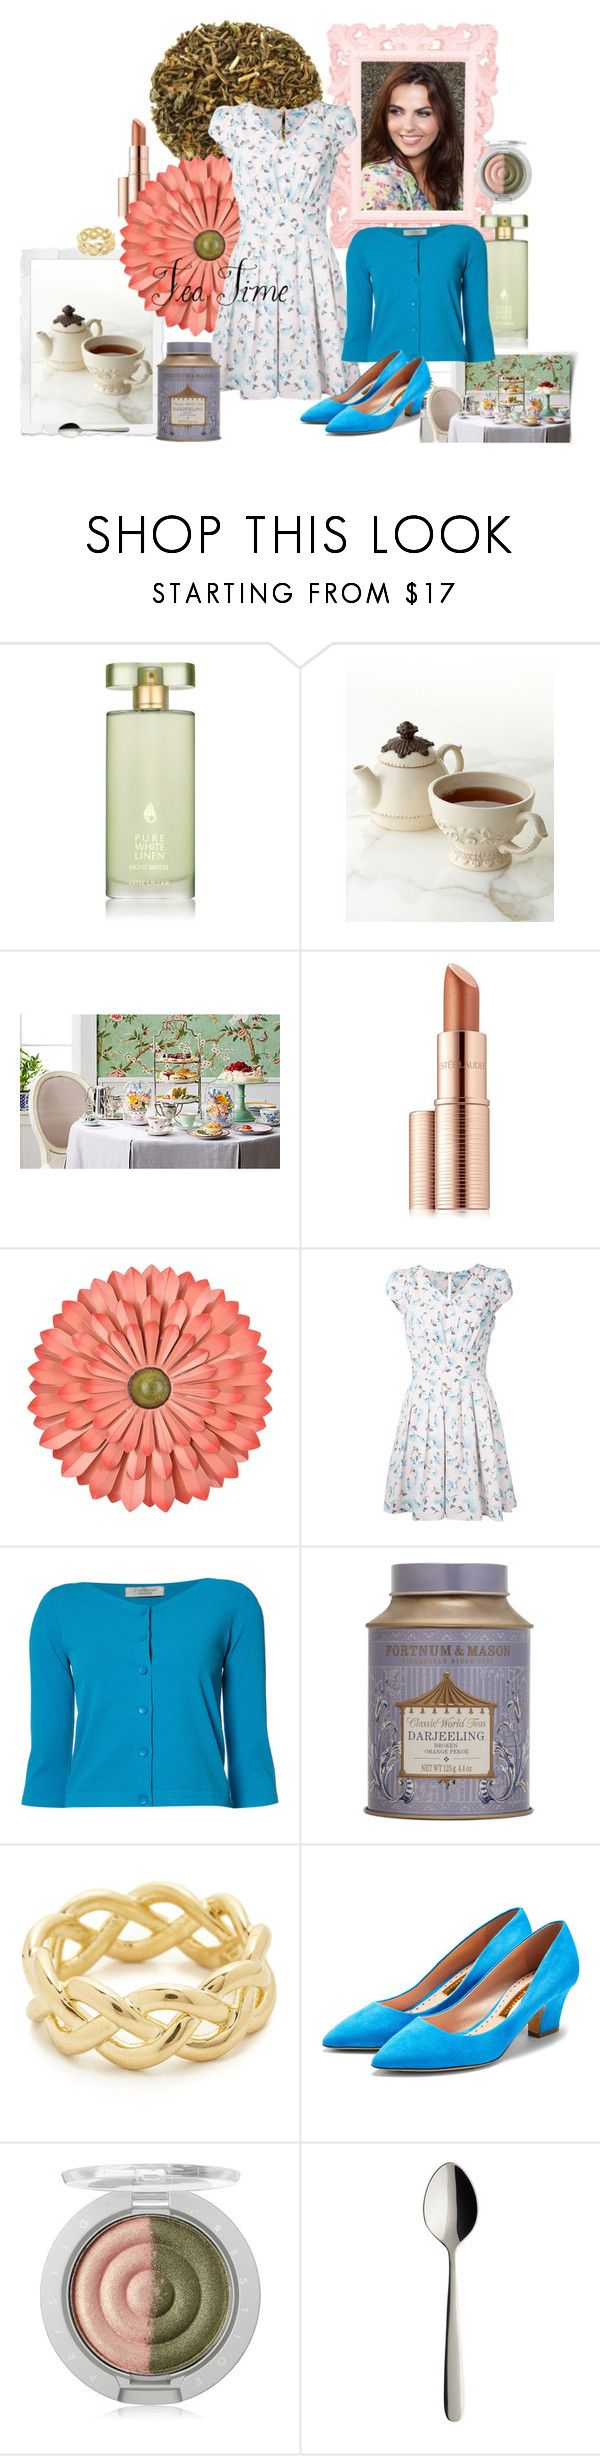 """""""Afternoon Tea"""" by veronica-h ❤ liked on Polyvore featuring Estée Lauder, GG Collection, Guild Prime, D.Exterior, Fortnum & Mason, Soave Oro, Rupert Sanderson, Villeroy & Boch, dress and tea"""